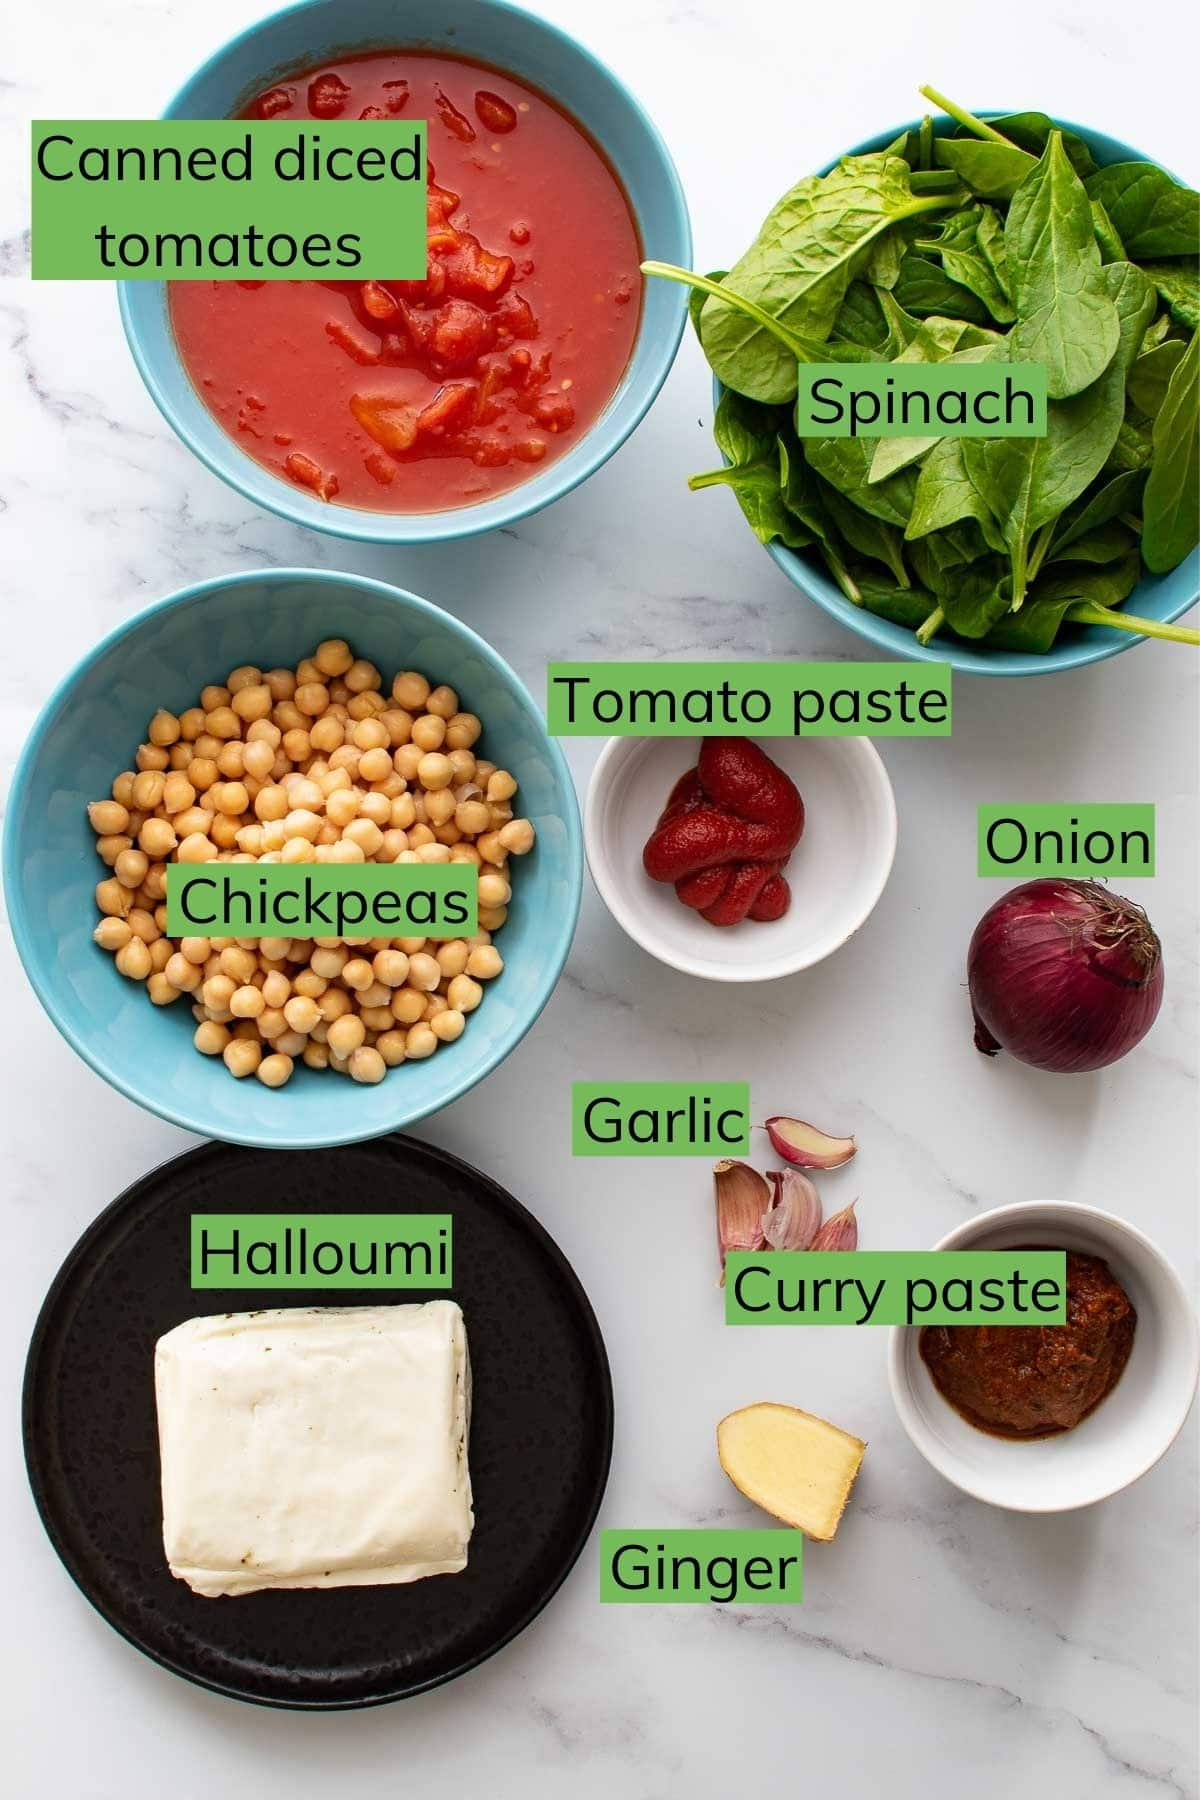 The ingredients needed to make Chickpea and Halloumi Curry laid out on a table.